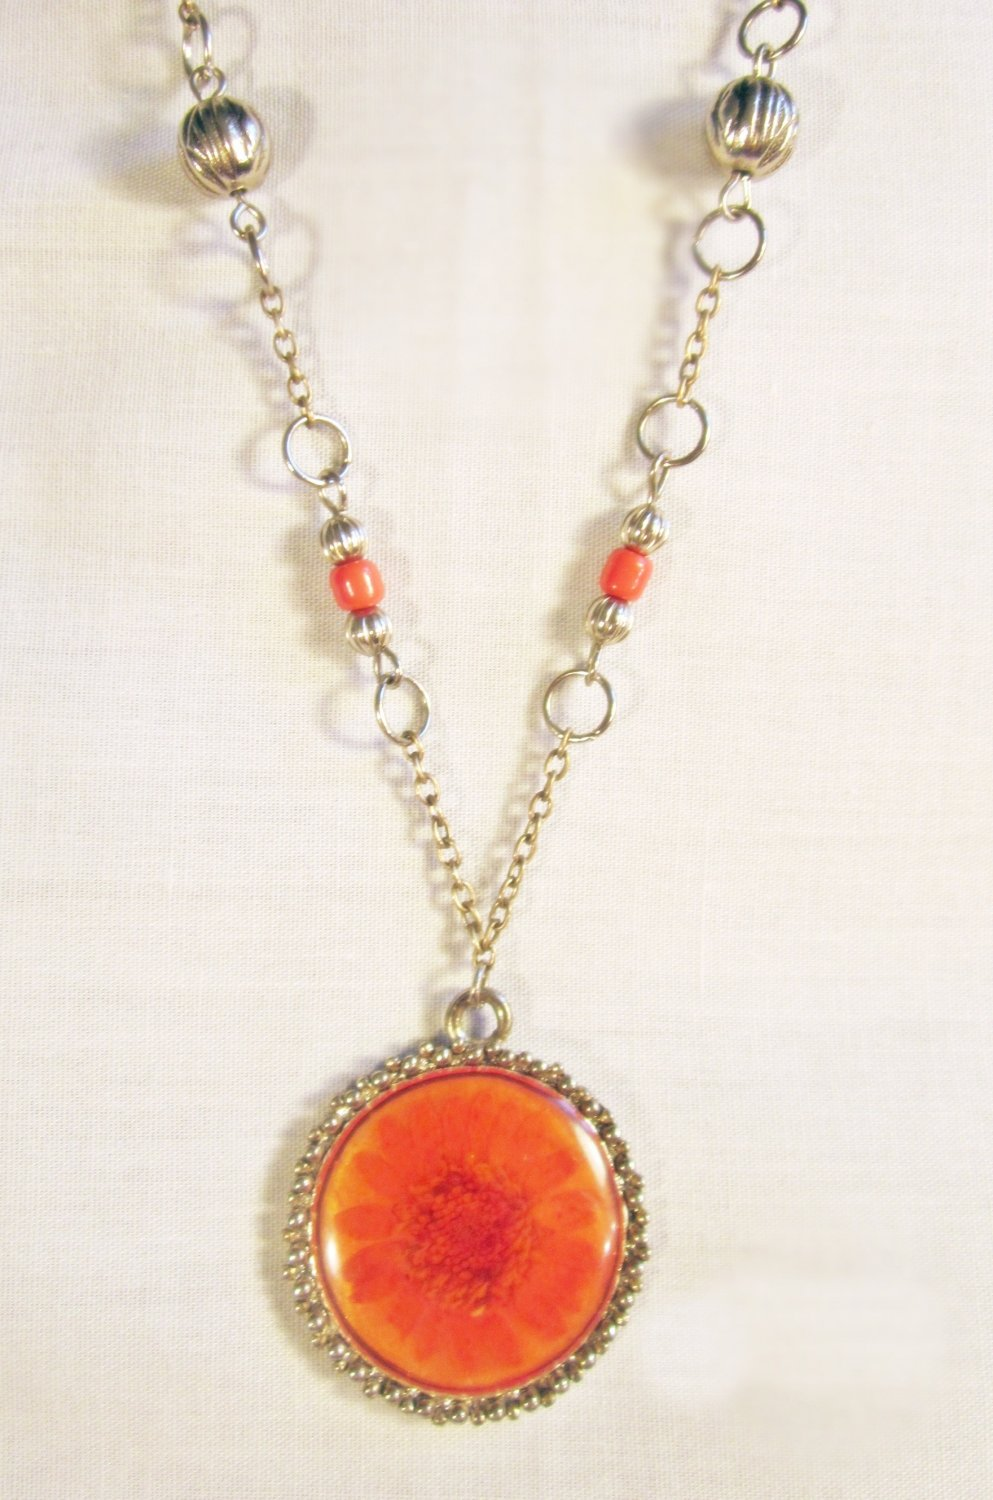 N2 - Red beaded necklace with flower pendant